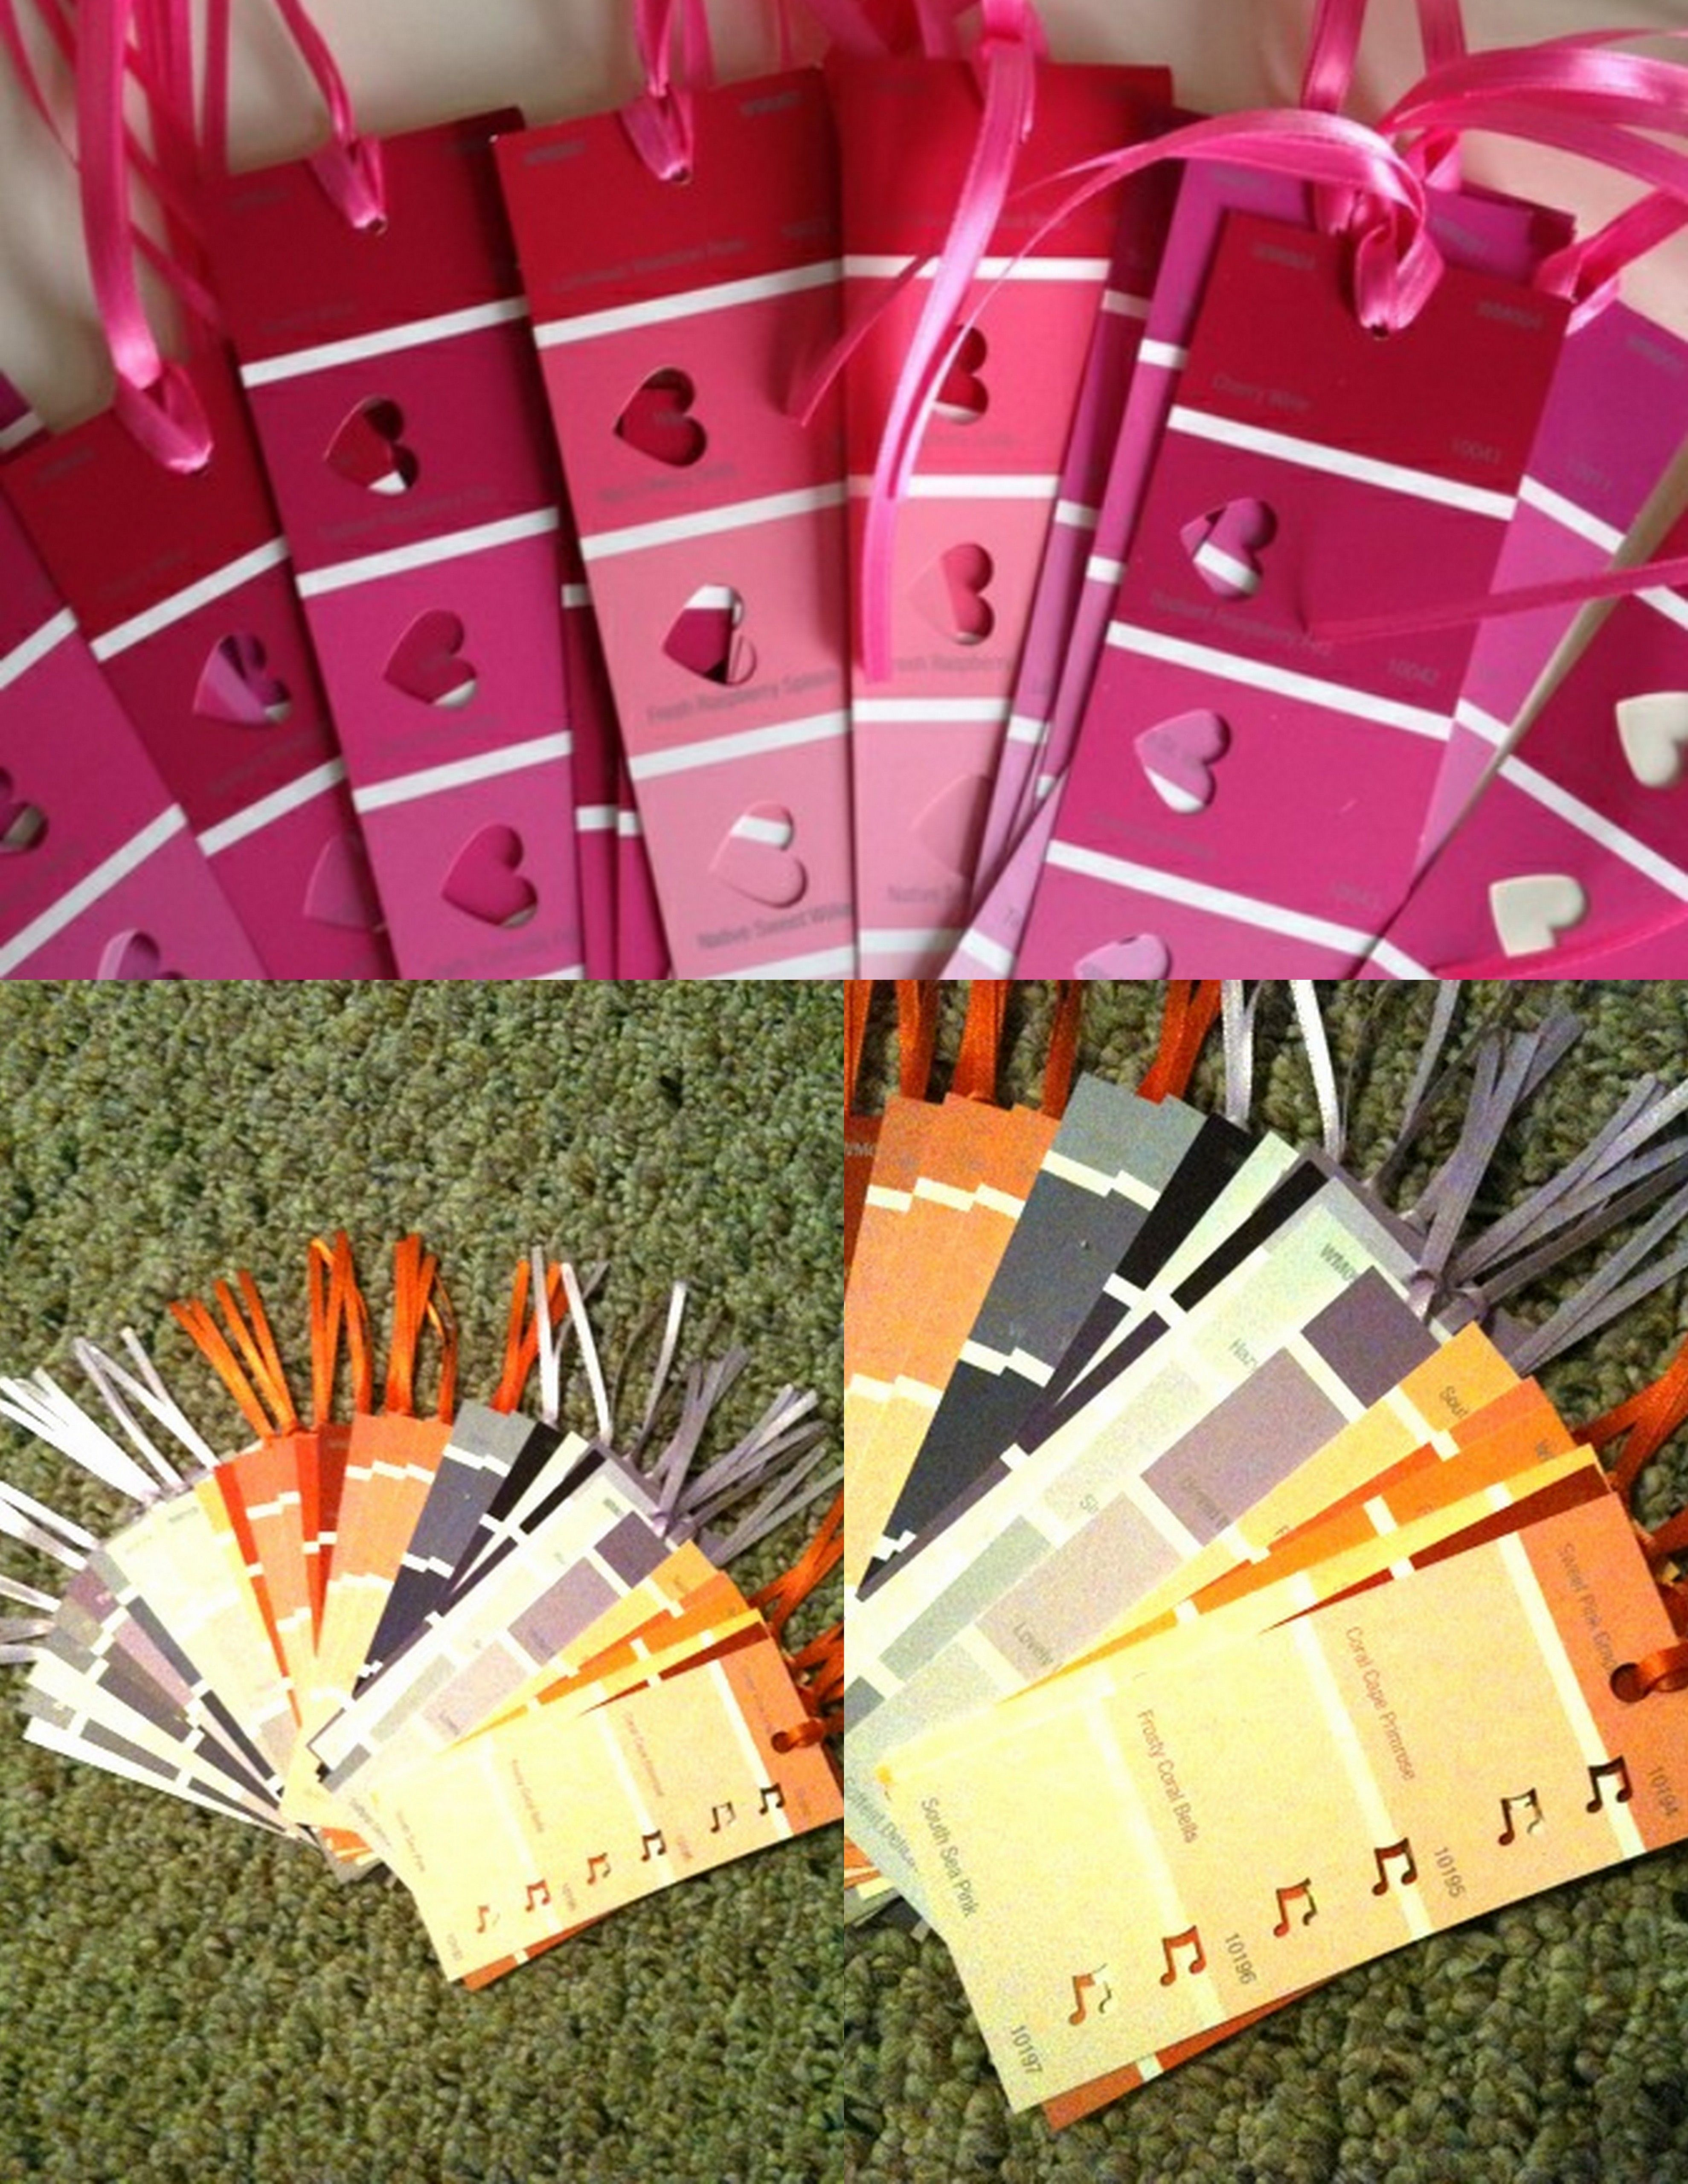 Top Valentines Book Marks Made From Paint Sample Strips Found On Pinterest Frugalfamilyfunblog Com Valentine Gift For Daughter Crafts Paint Sample Cards